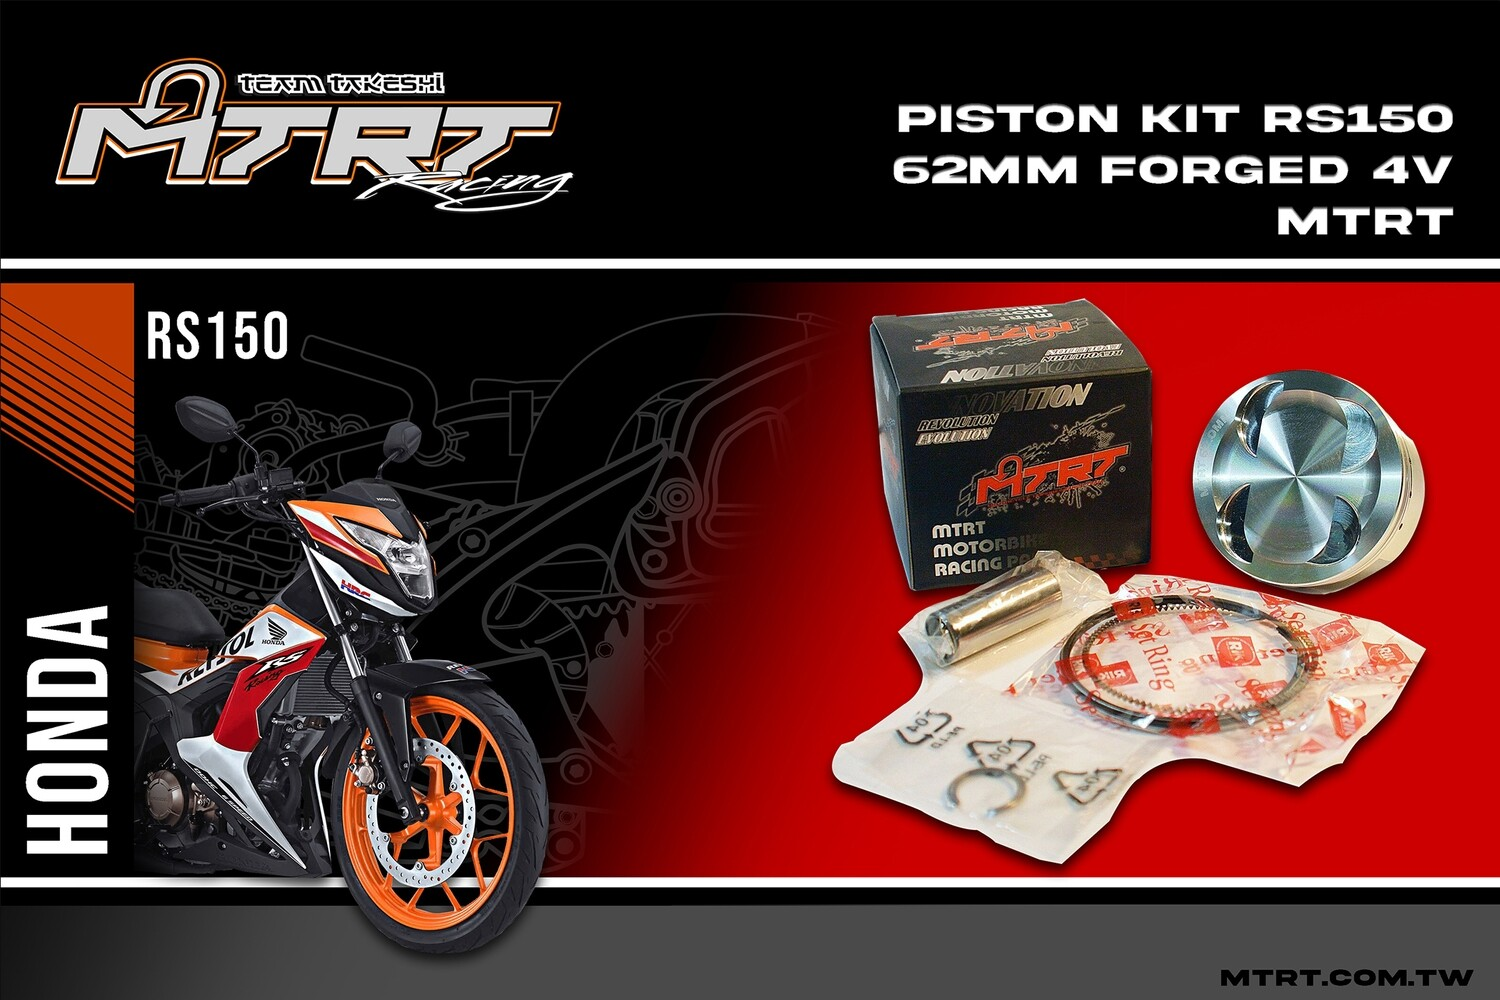 PISTON  KIT RS150 Sonic150  62MM Forged  4V MTRT